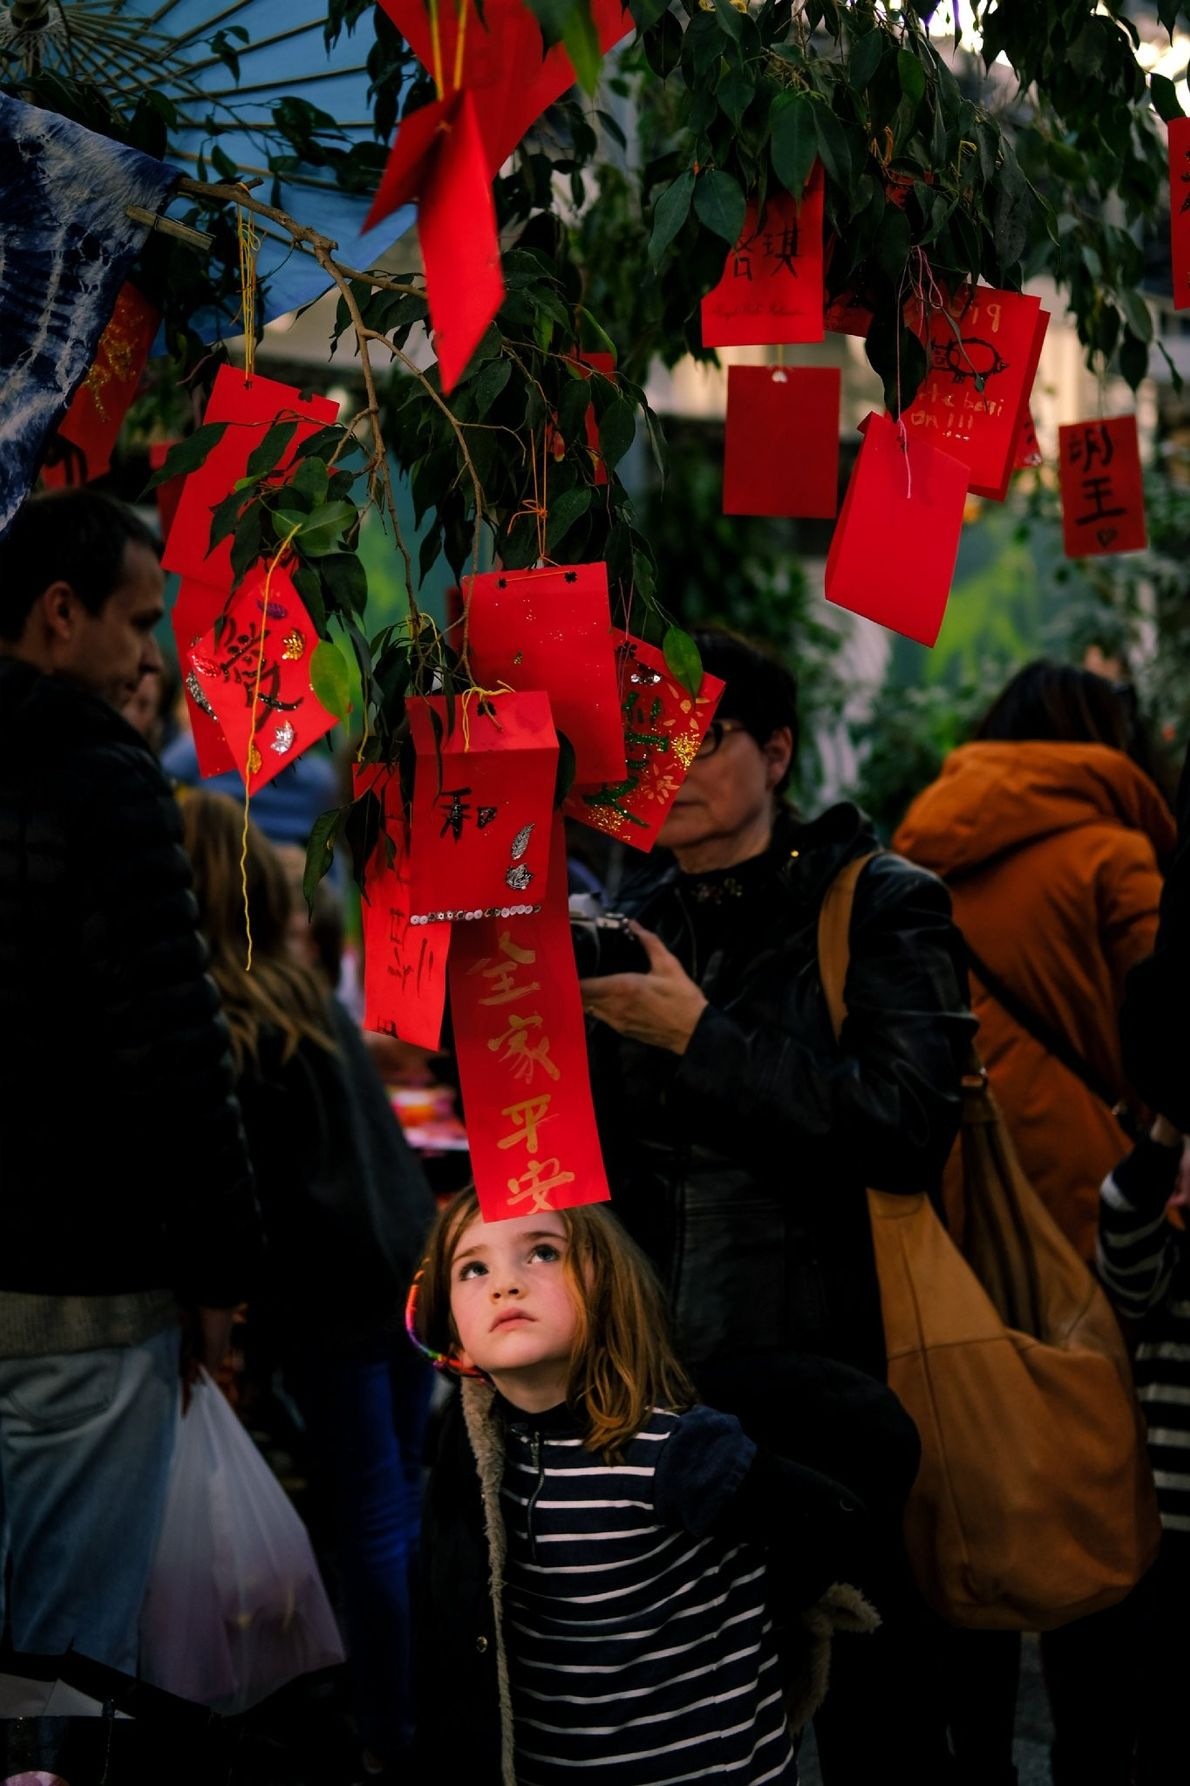 A young girl looks at Chinese calligraphy strung into a tree in Dublin, Ireland from the ...